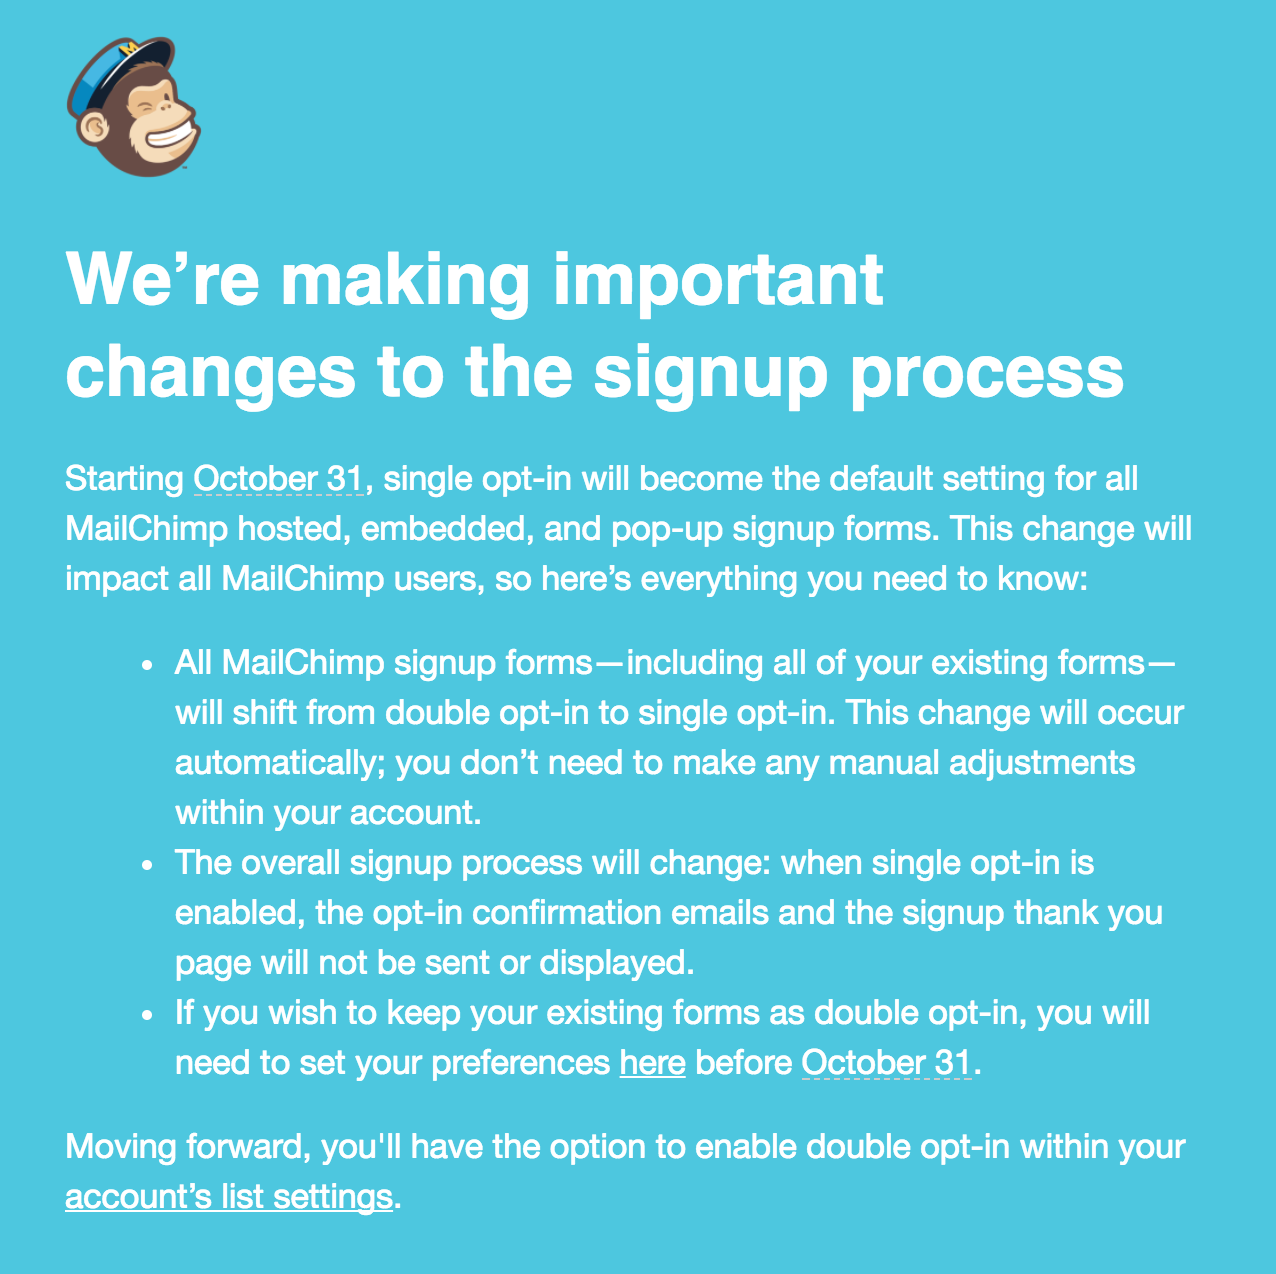 mailchimp-changes